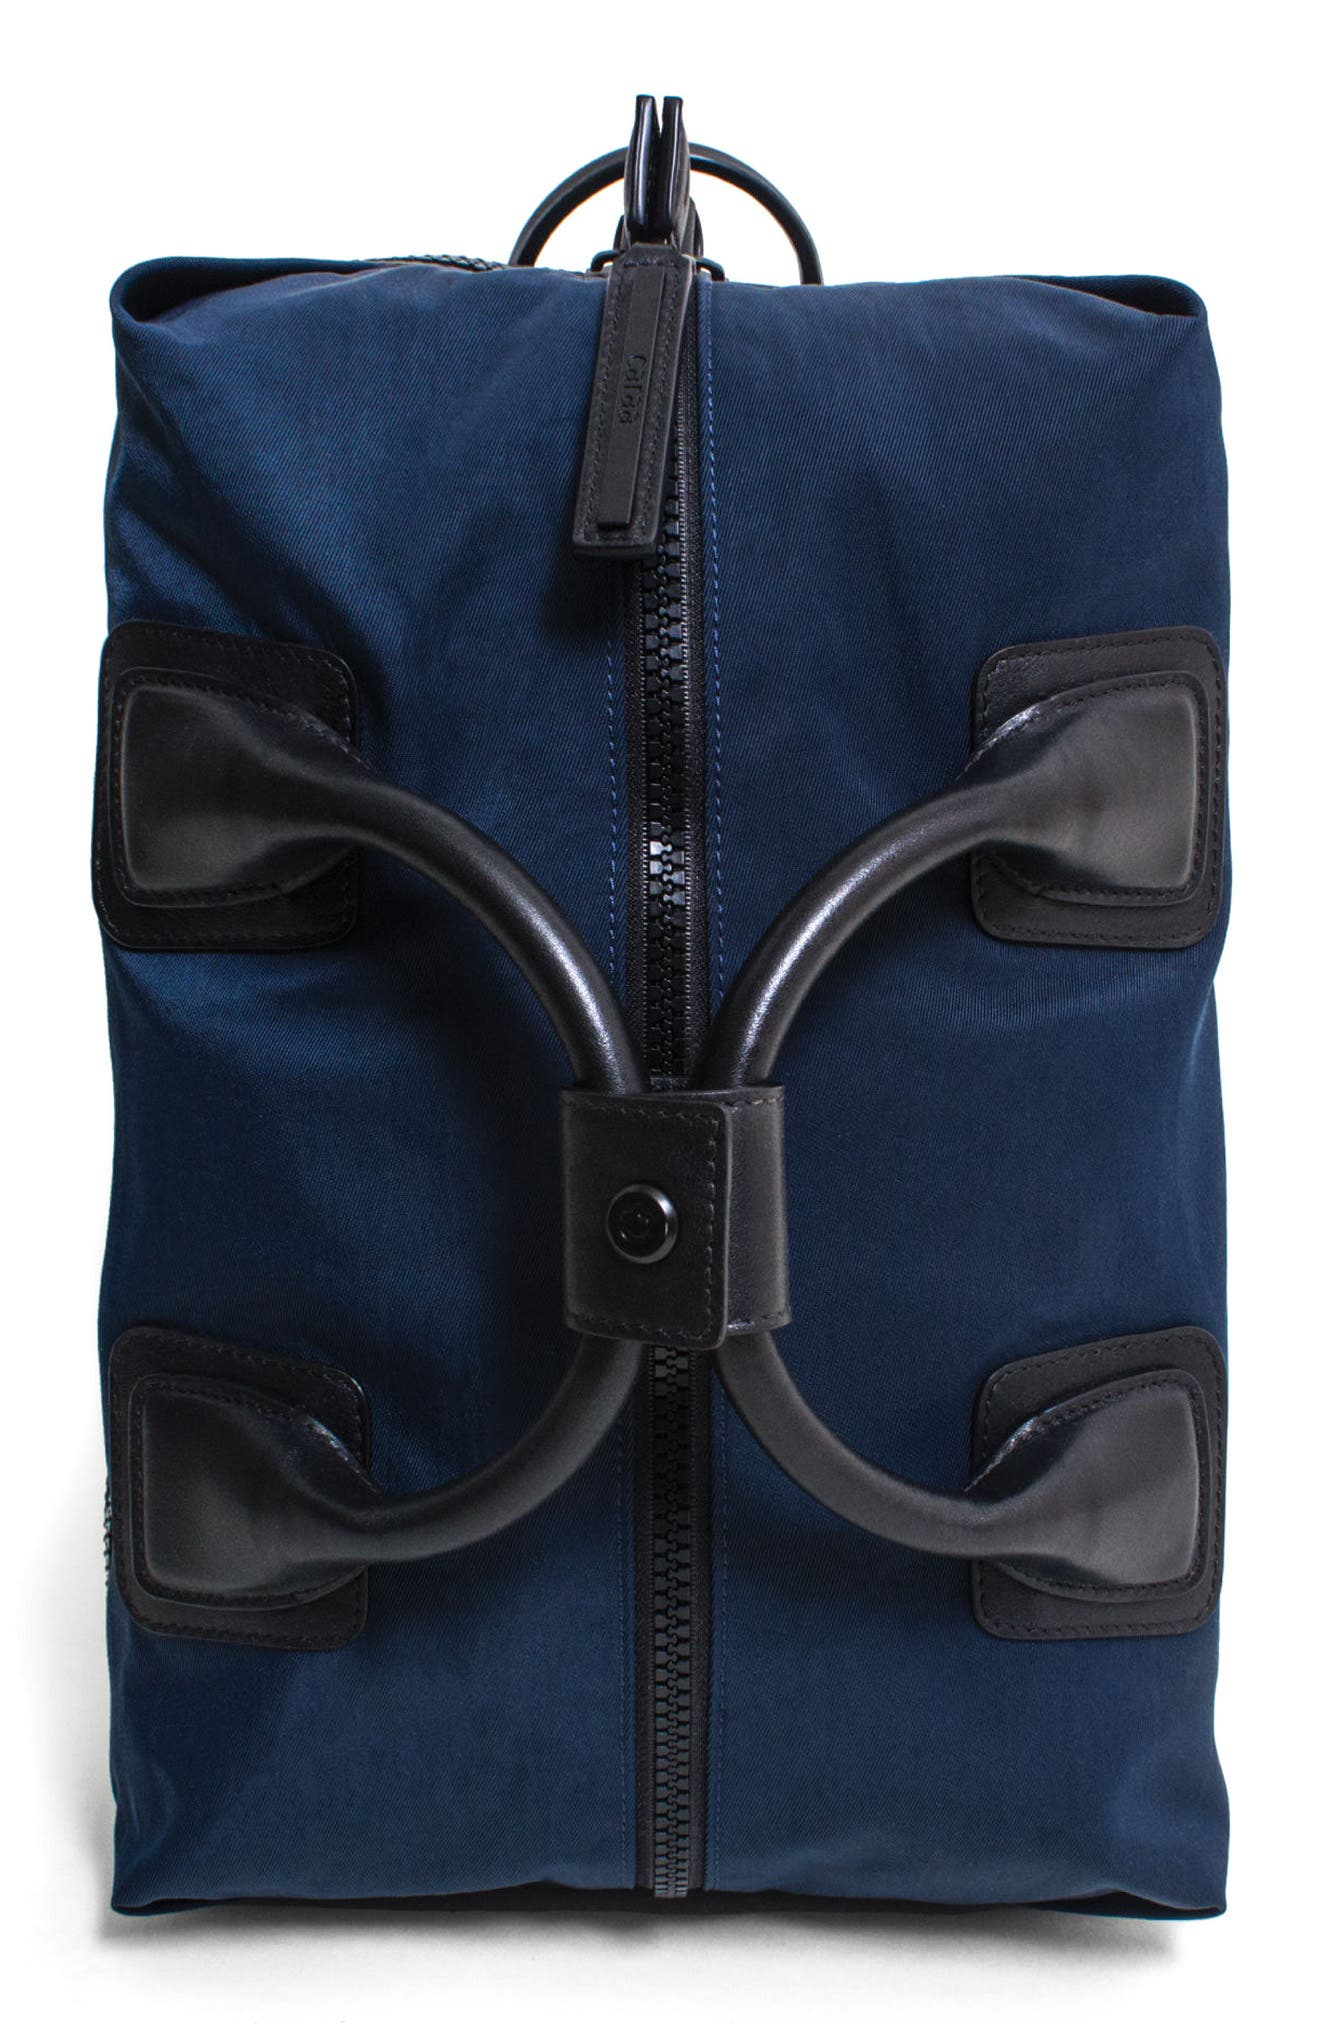 Main Image - Caraa Studio 1.1 Convertible Duffel Bag